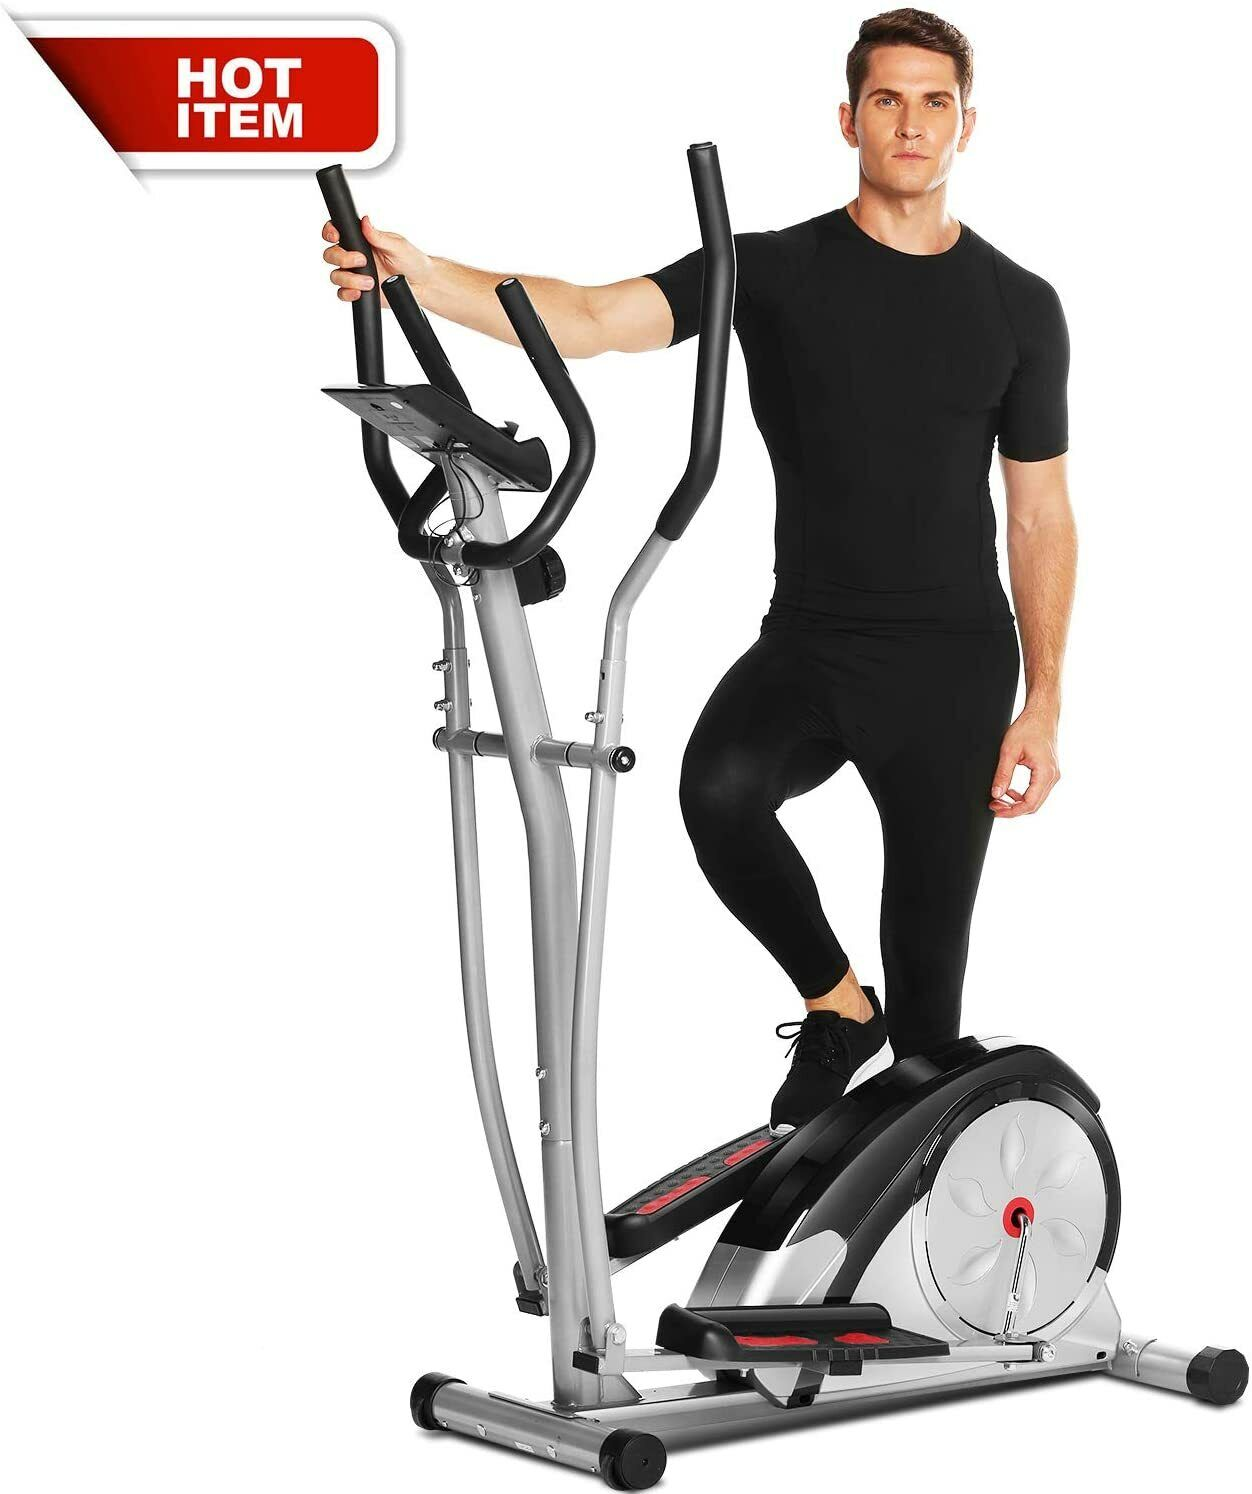 ANCHEER Magnetic Control Mute Elliptical Trainer w/ LCD Moni